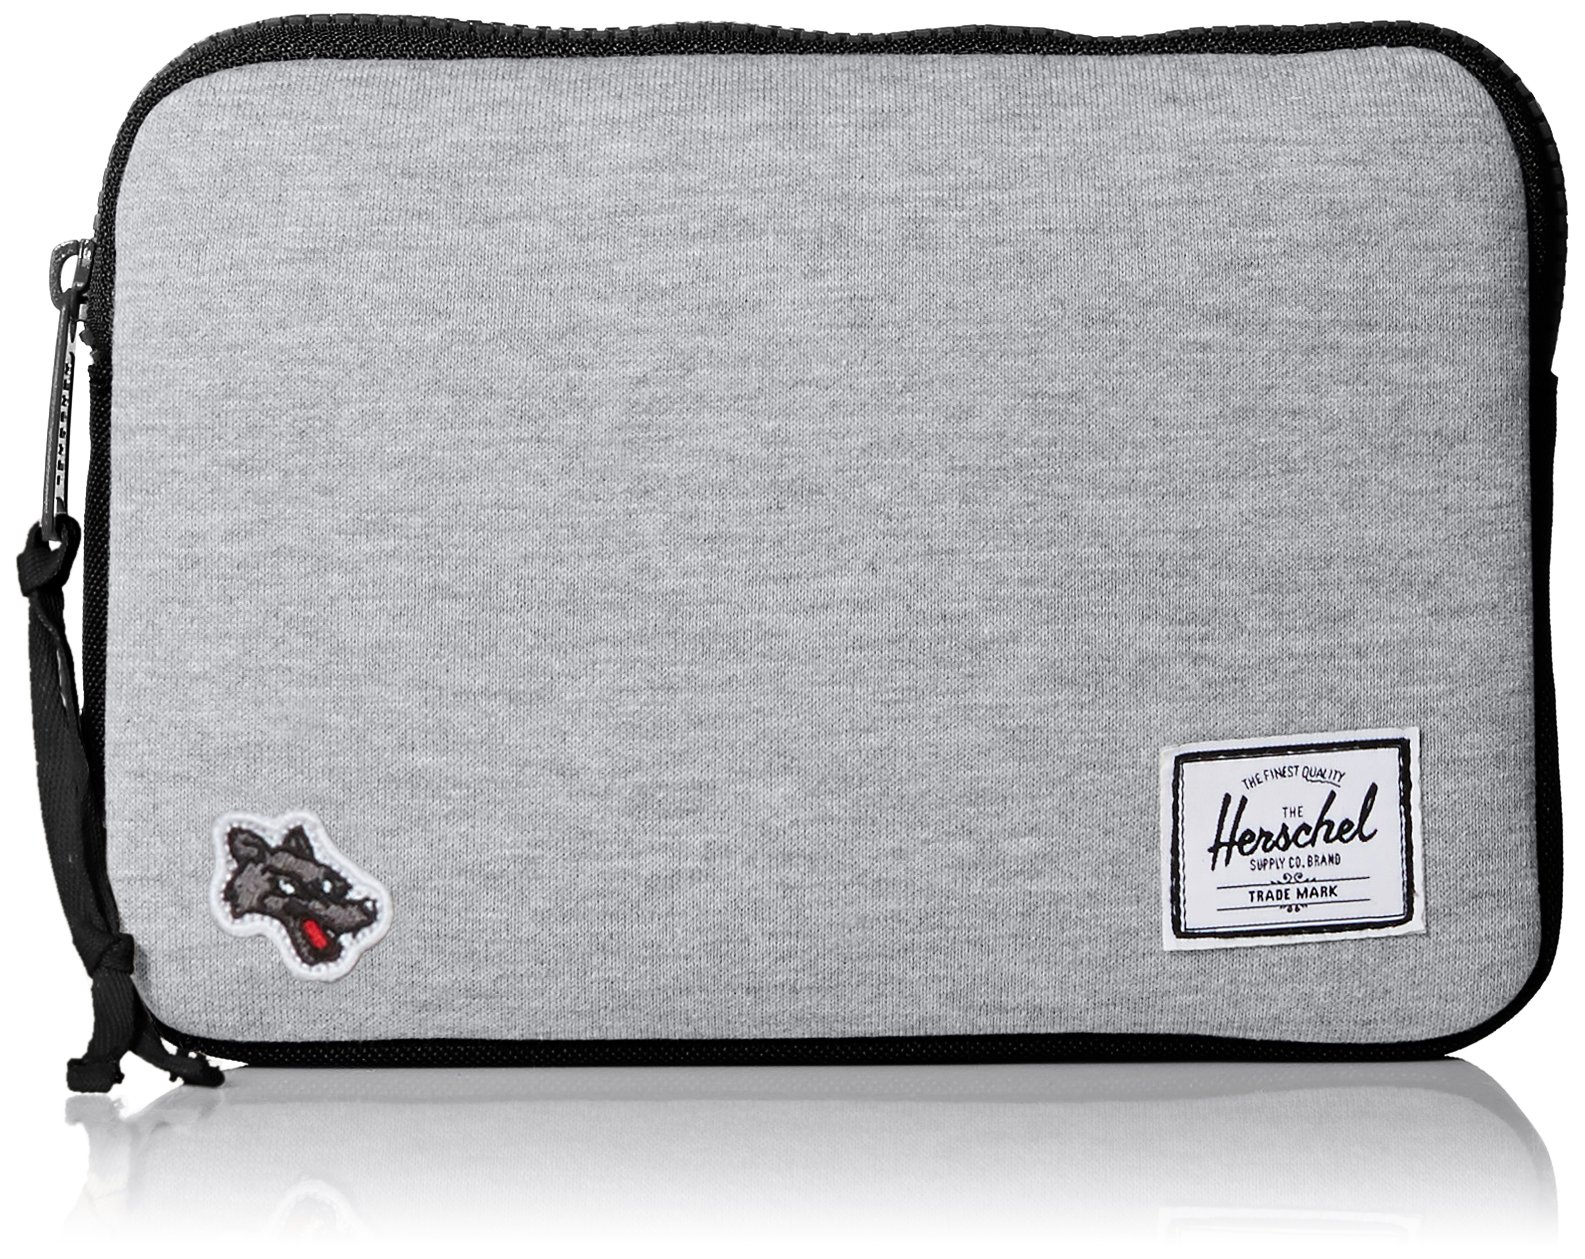 0d8848f586d Details about Herschel Supply Co. Women s Anchor Sleeve For IPad Mini Home  Aw... Free Shipping